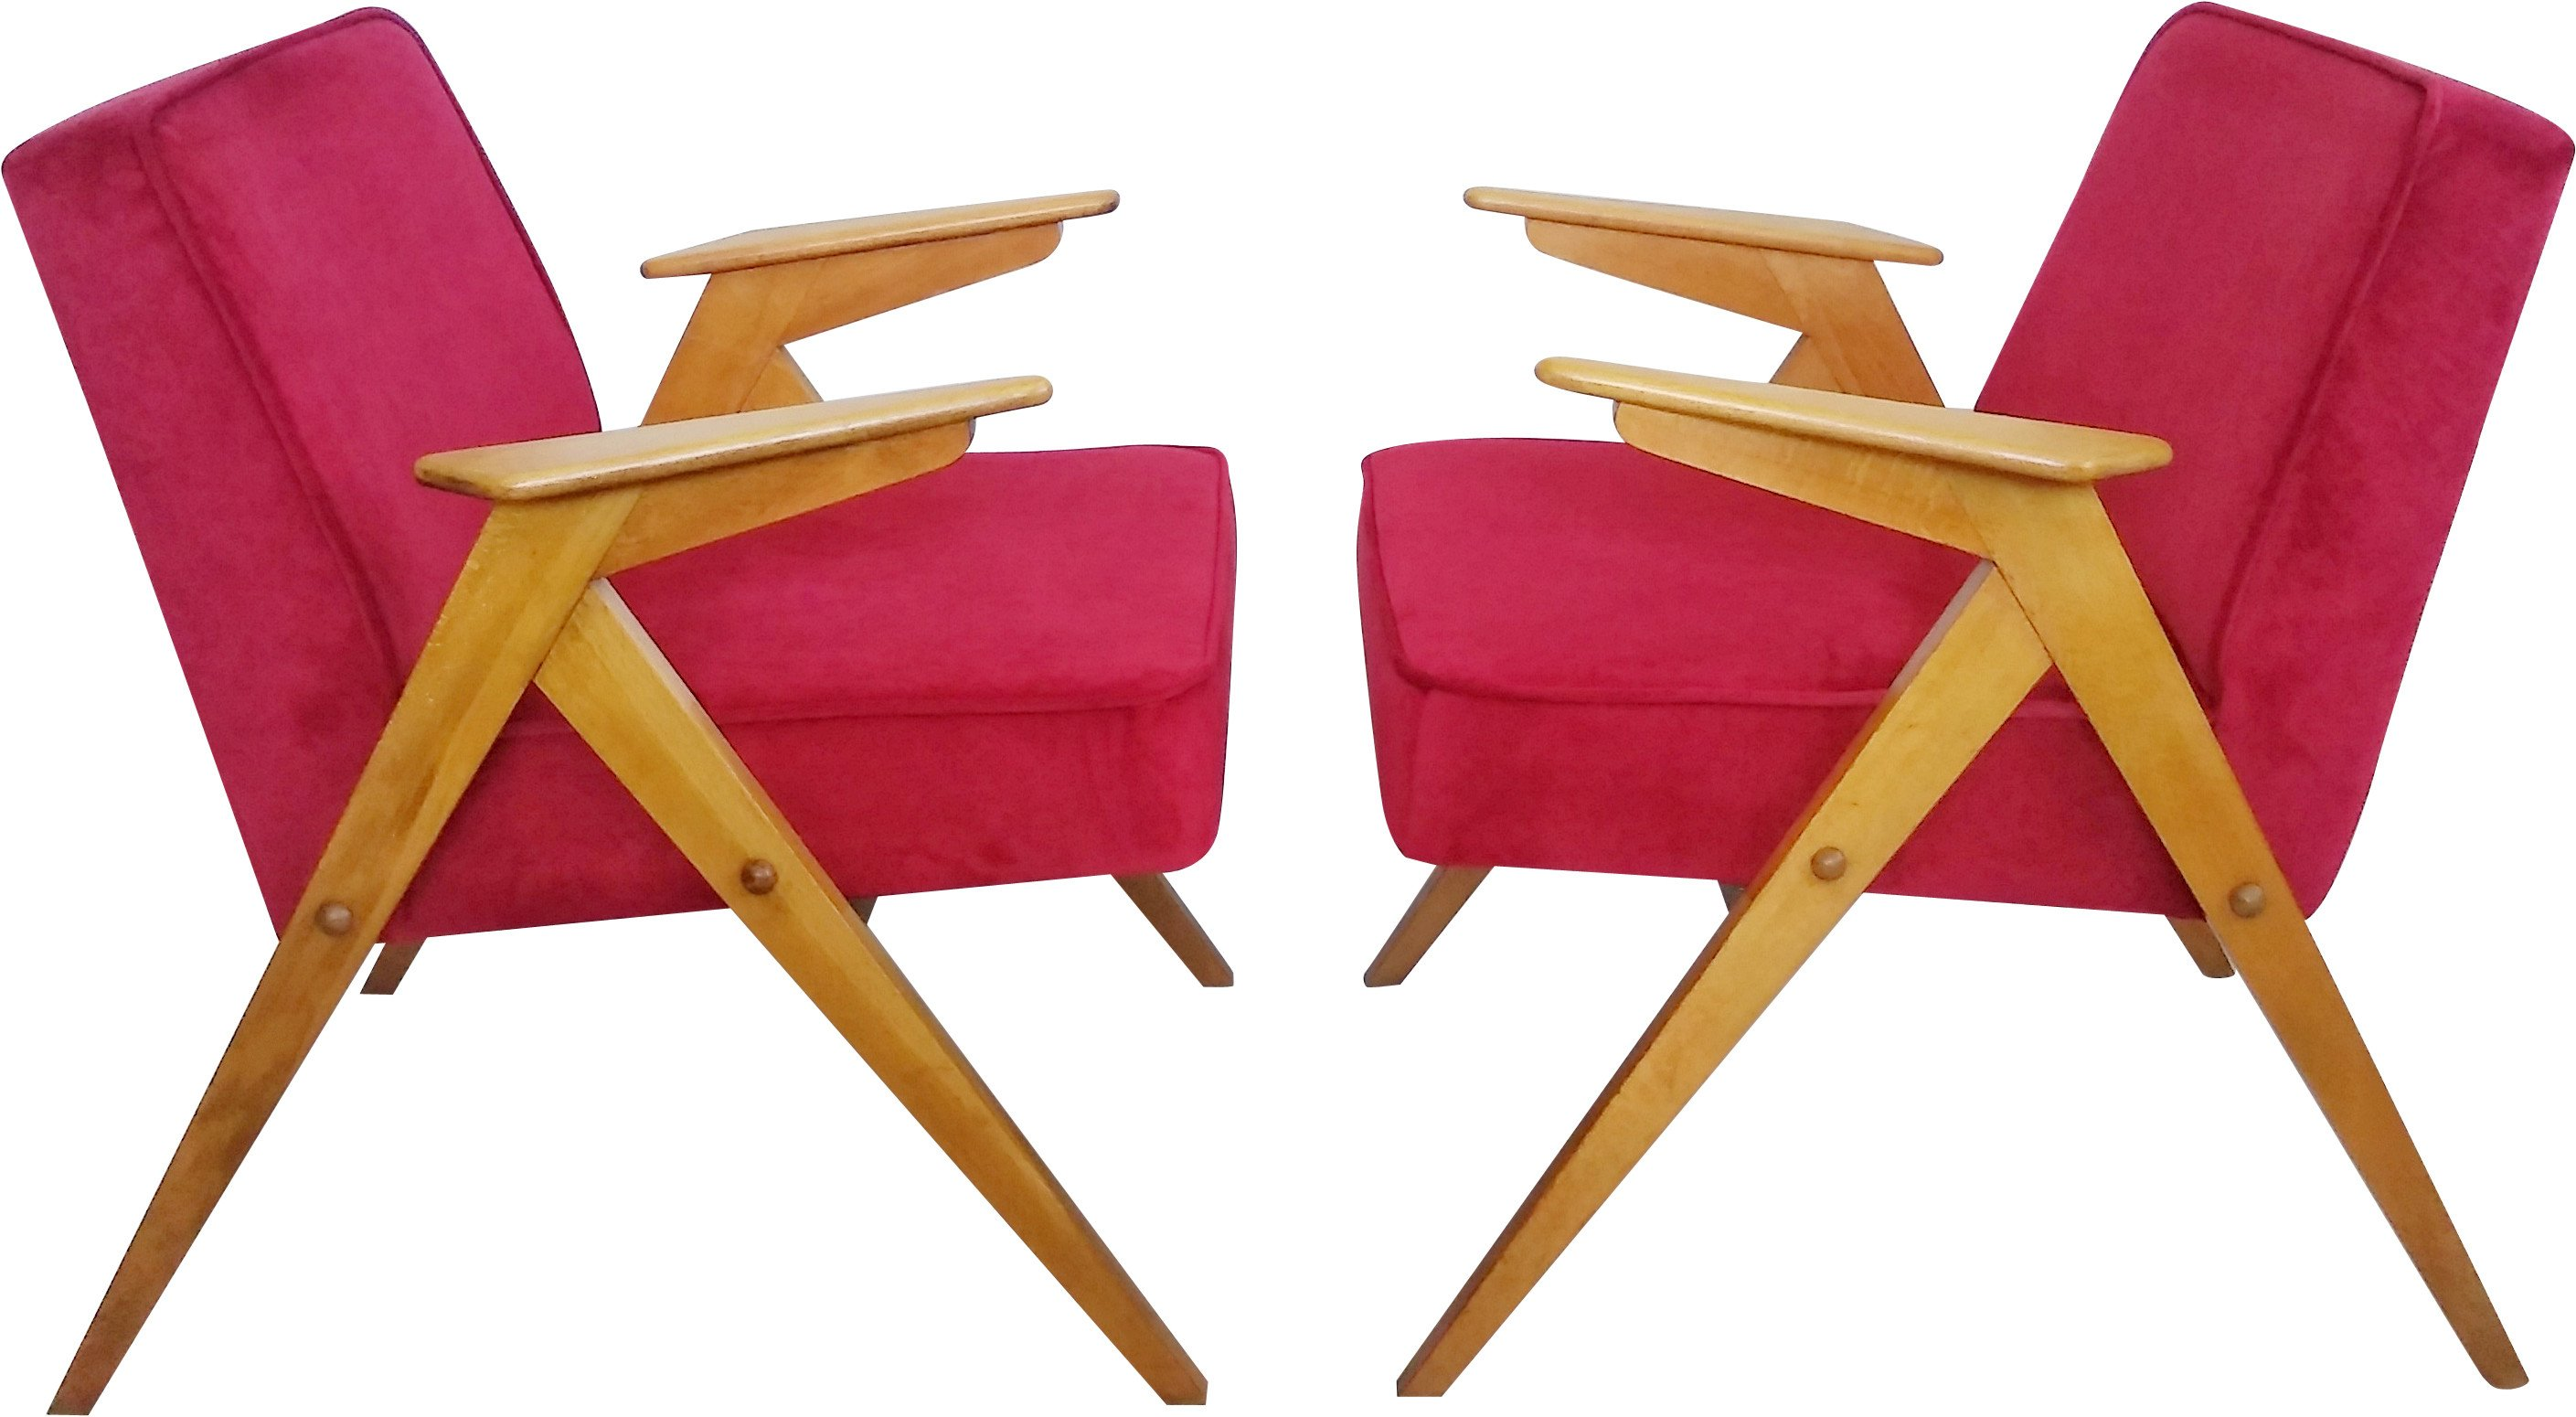 Pair of Bunny Armchairs by J. Chierowski, Poland, 1970s